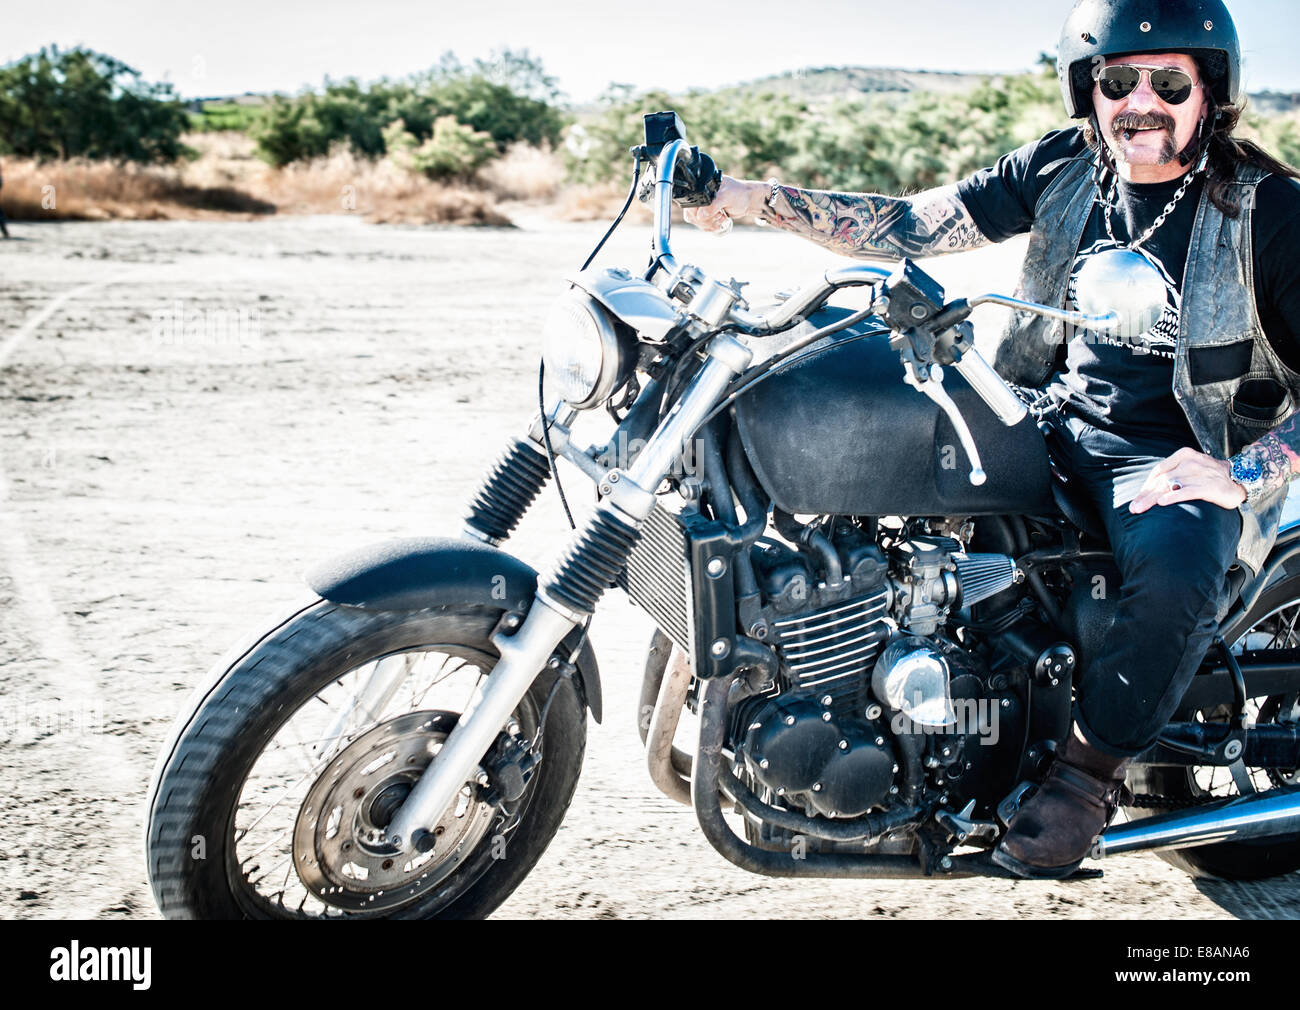 Portrait of male motorcyclist on arid plain, Cagliari, Sardinia, Italy - Stock Image